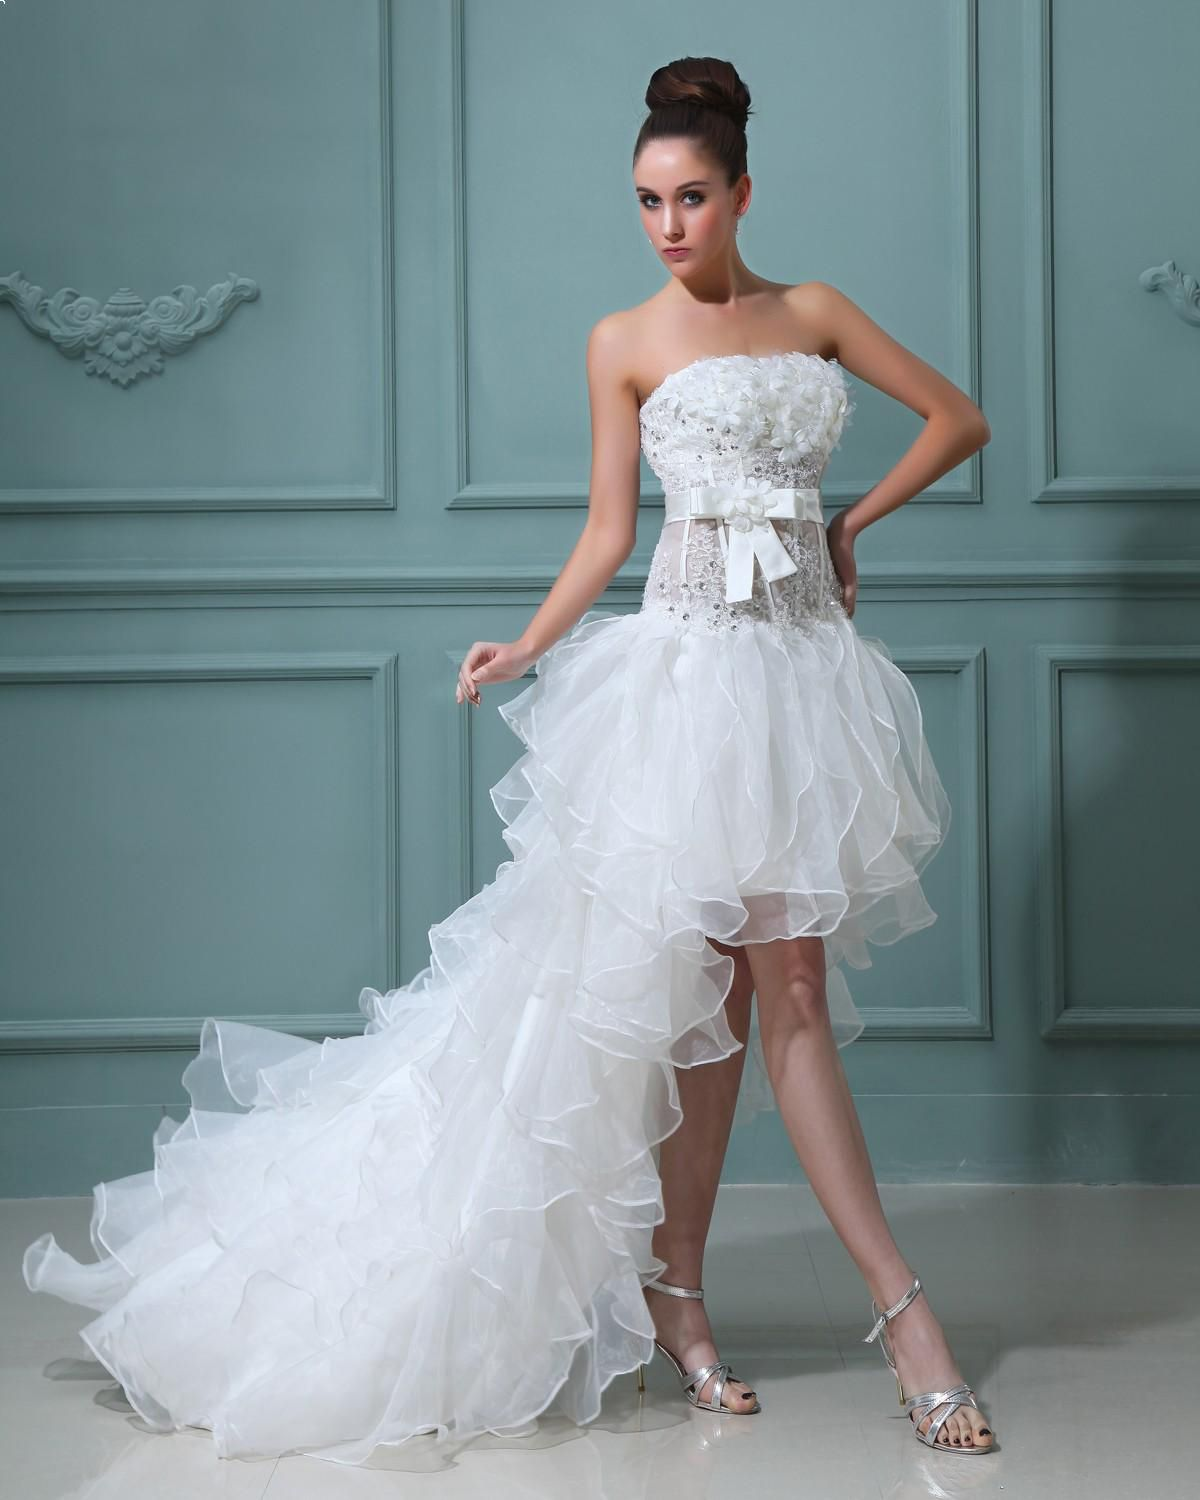 Ruffle Strapless Short Bridal Gown Wedding Dress Read More: http ...